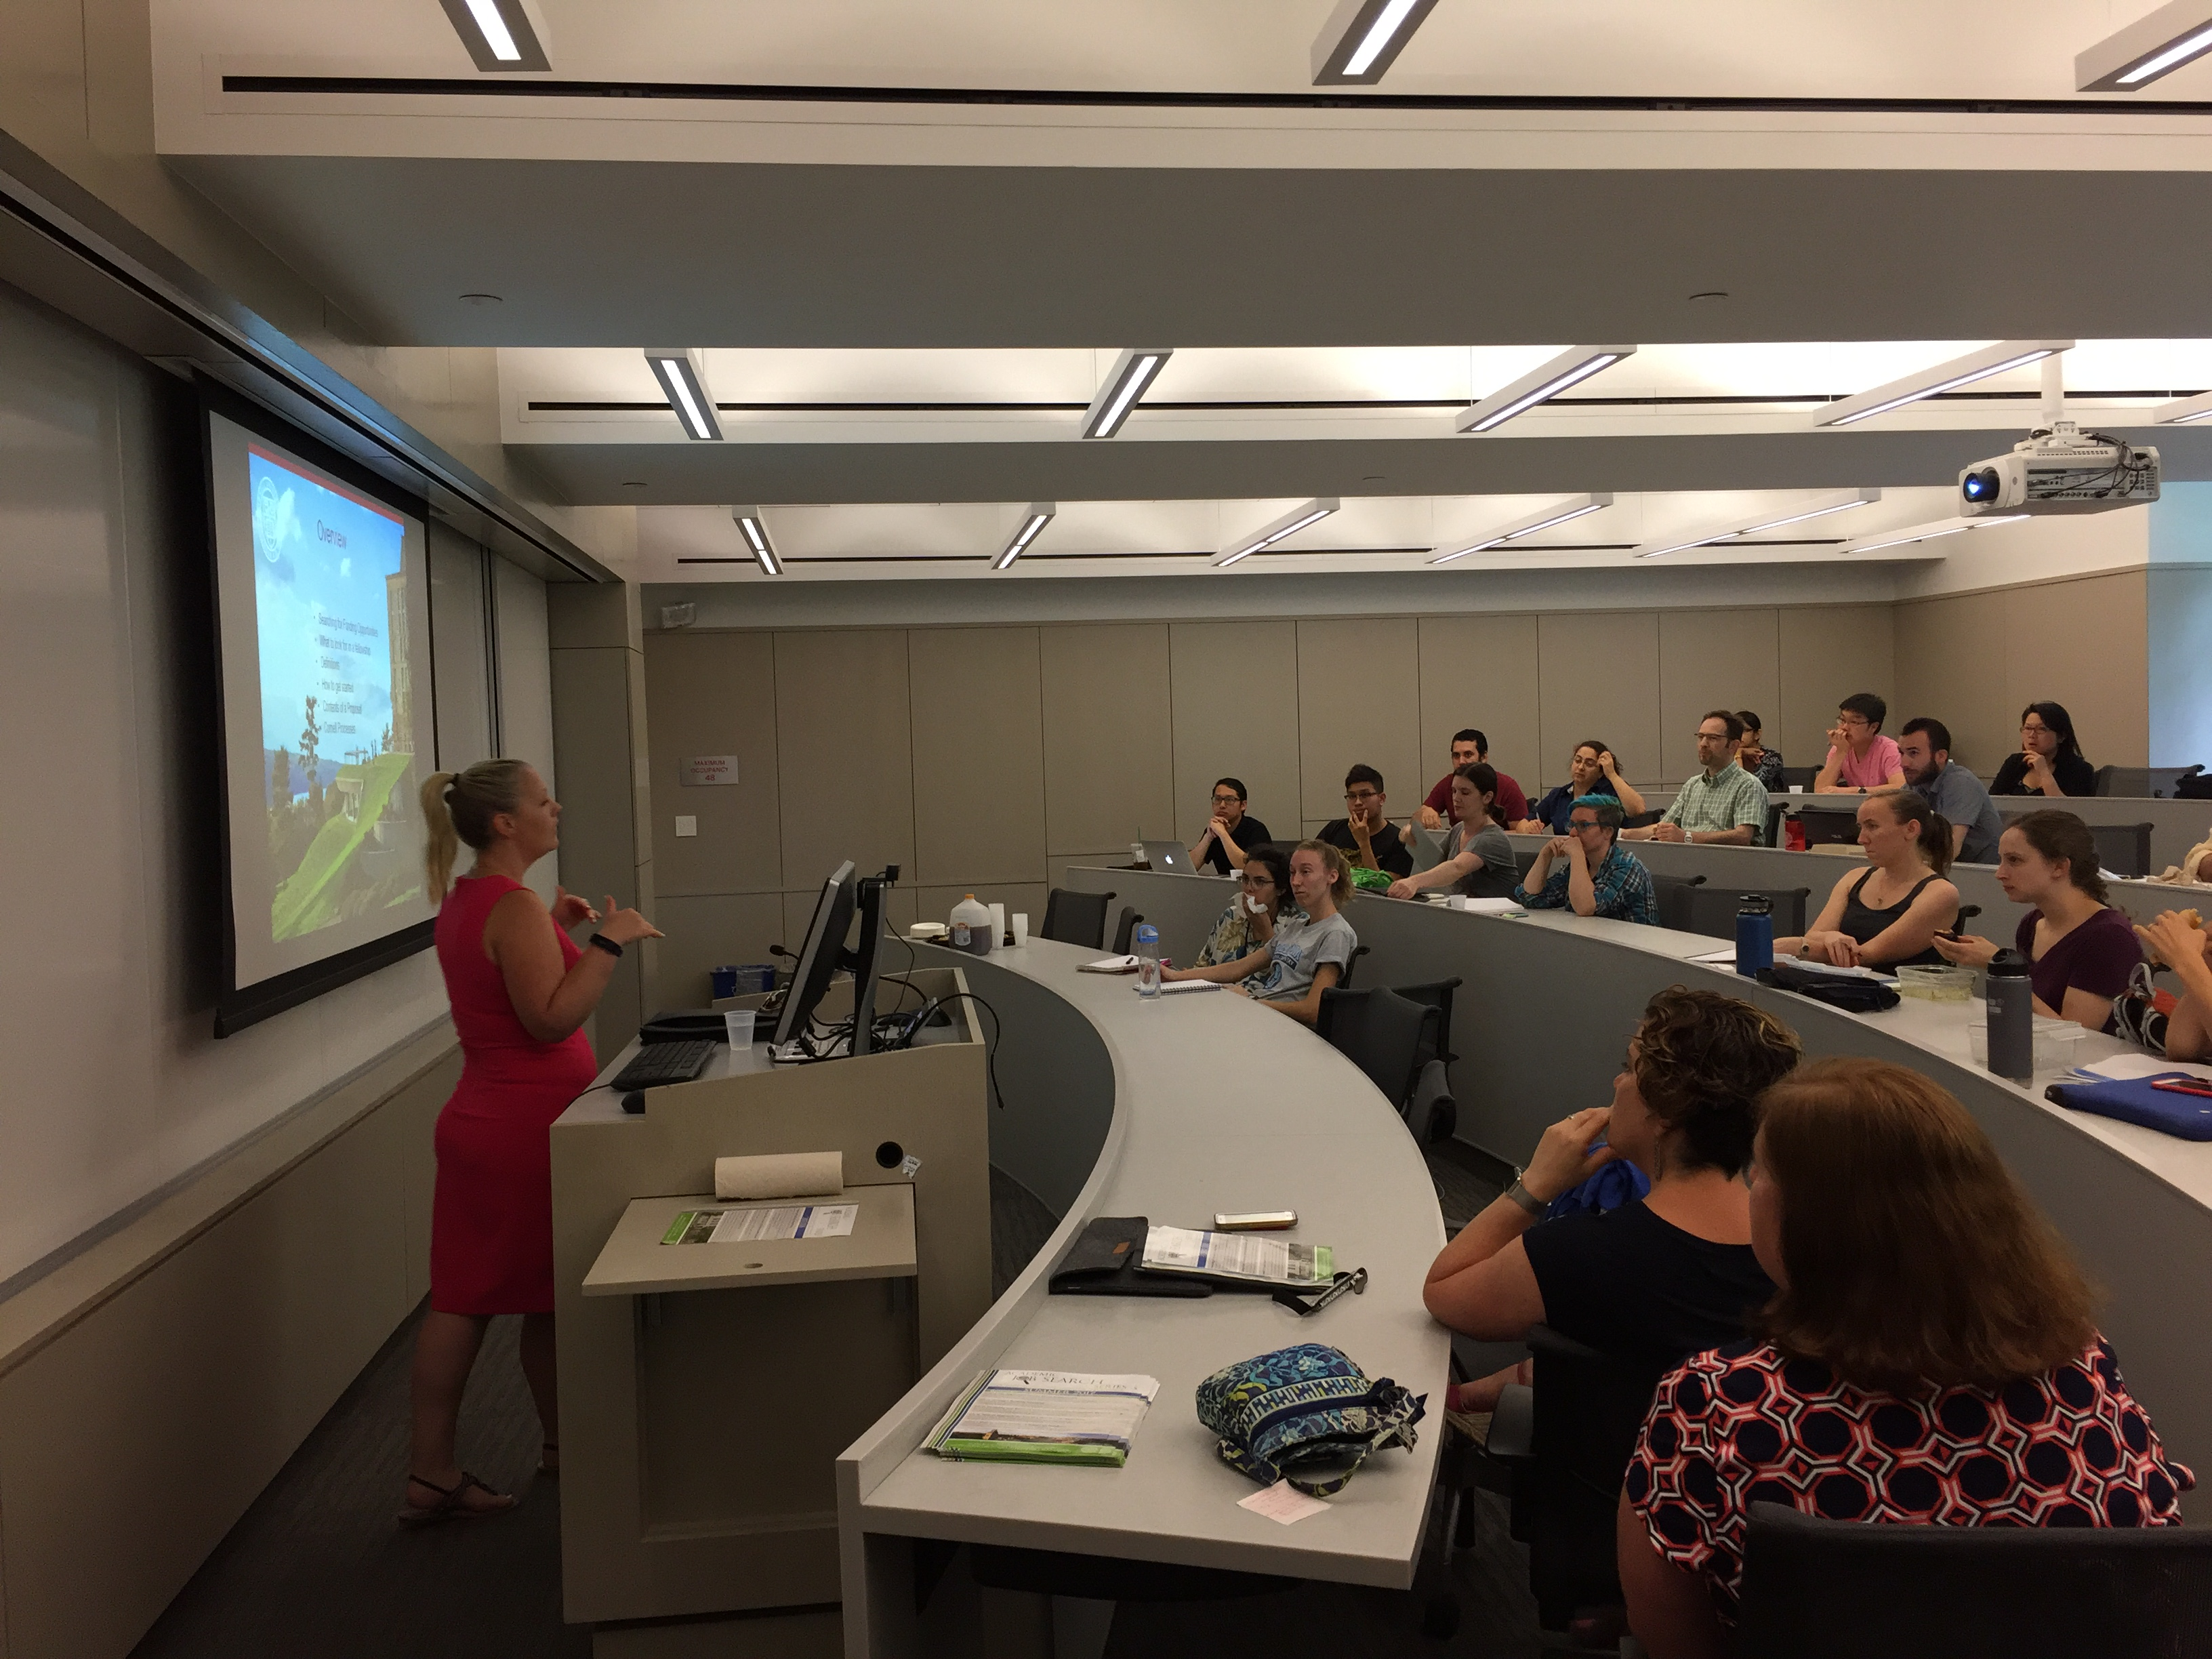 Kim Holloway, Office of Sponsored Programs, presents slides to a room of graduate students and postdocs